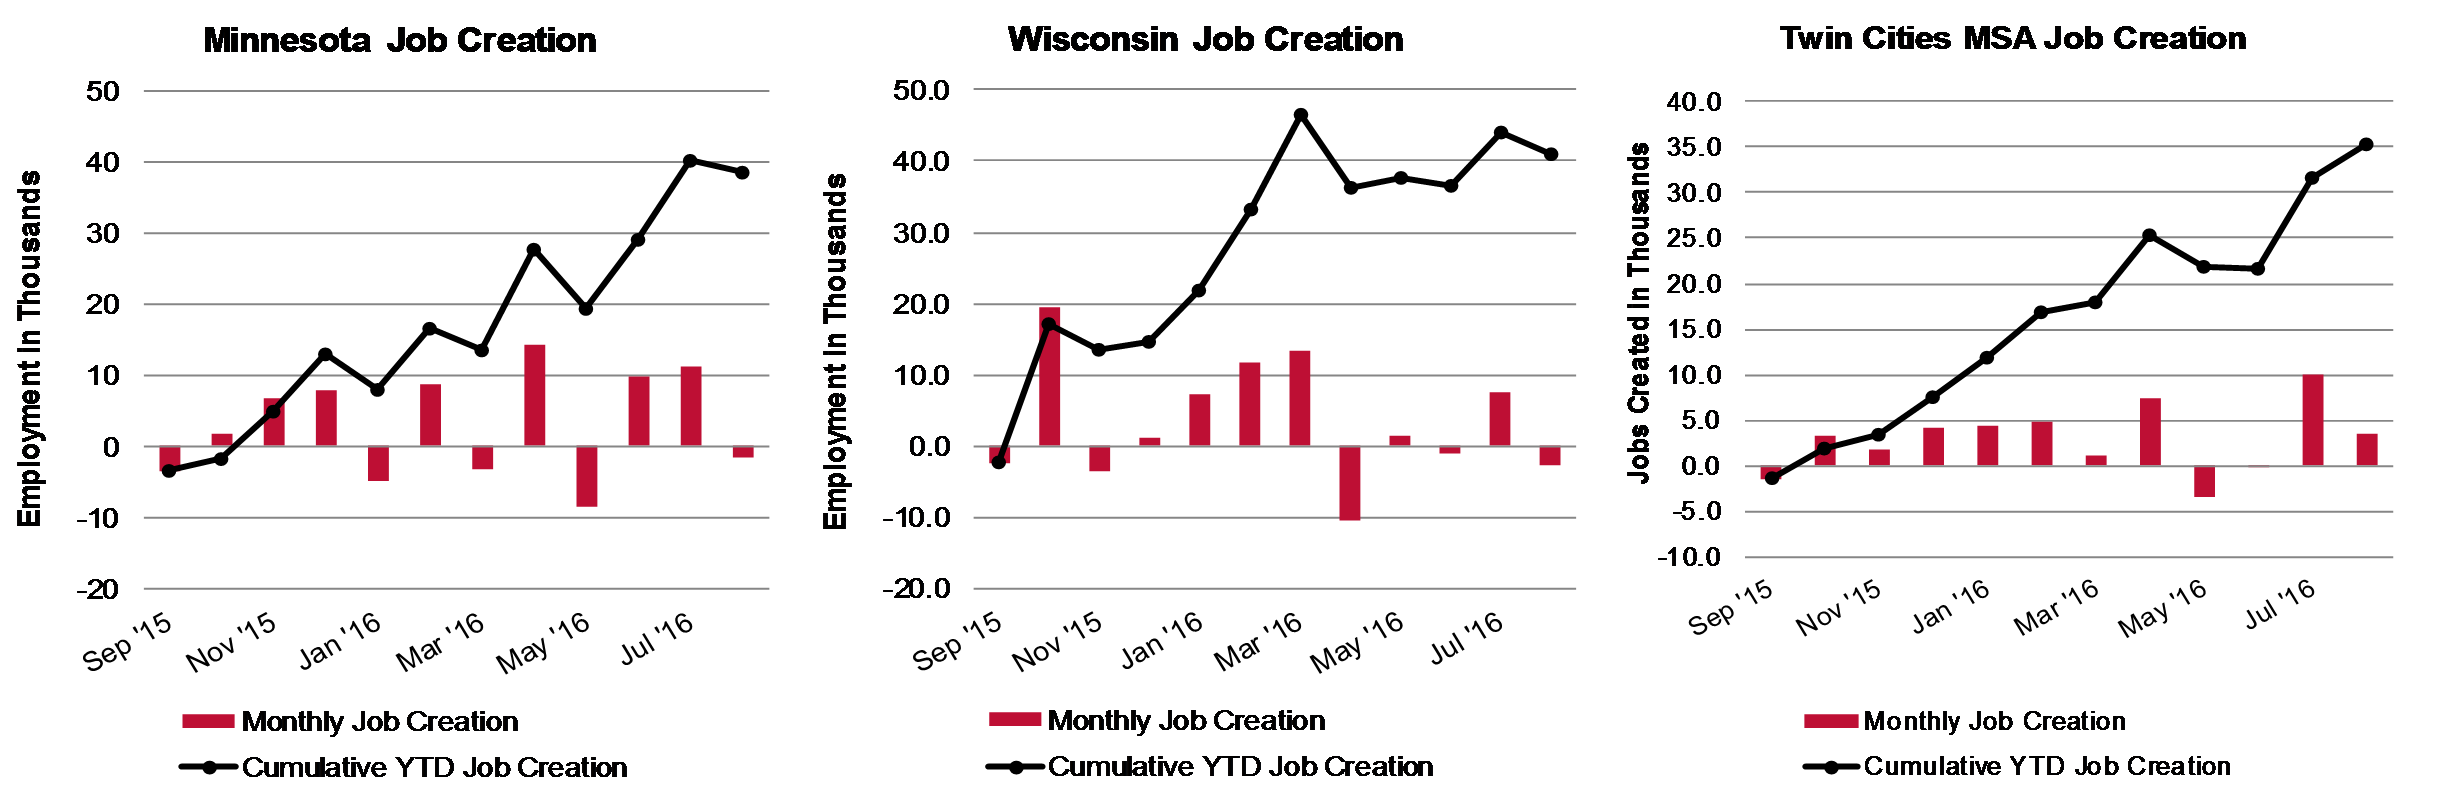 Area Job Creation